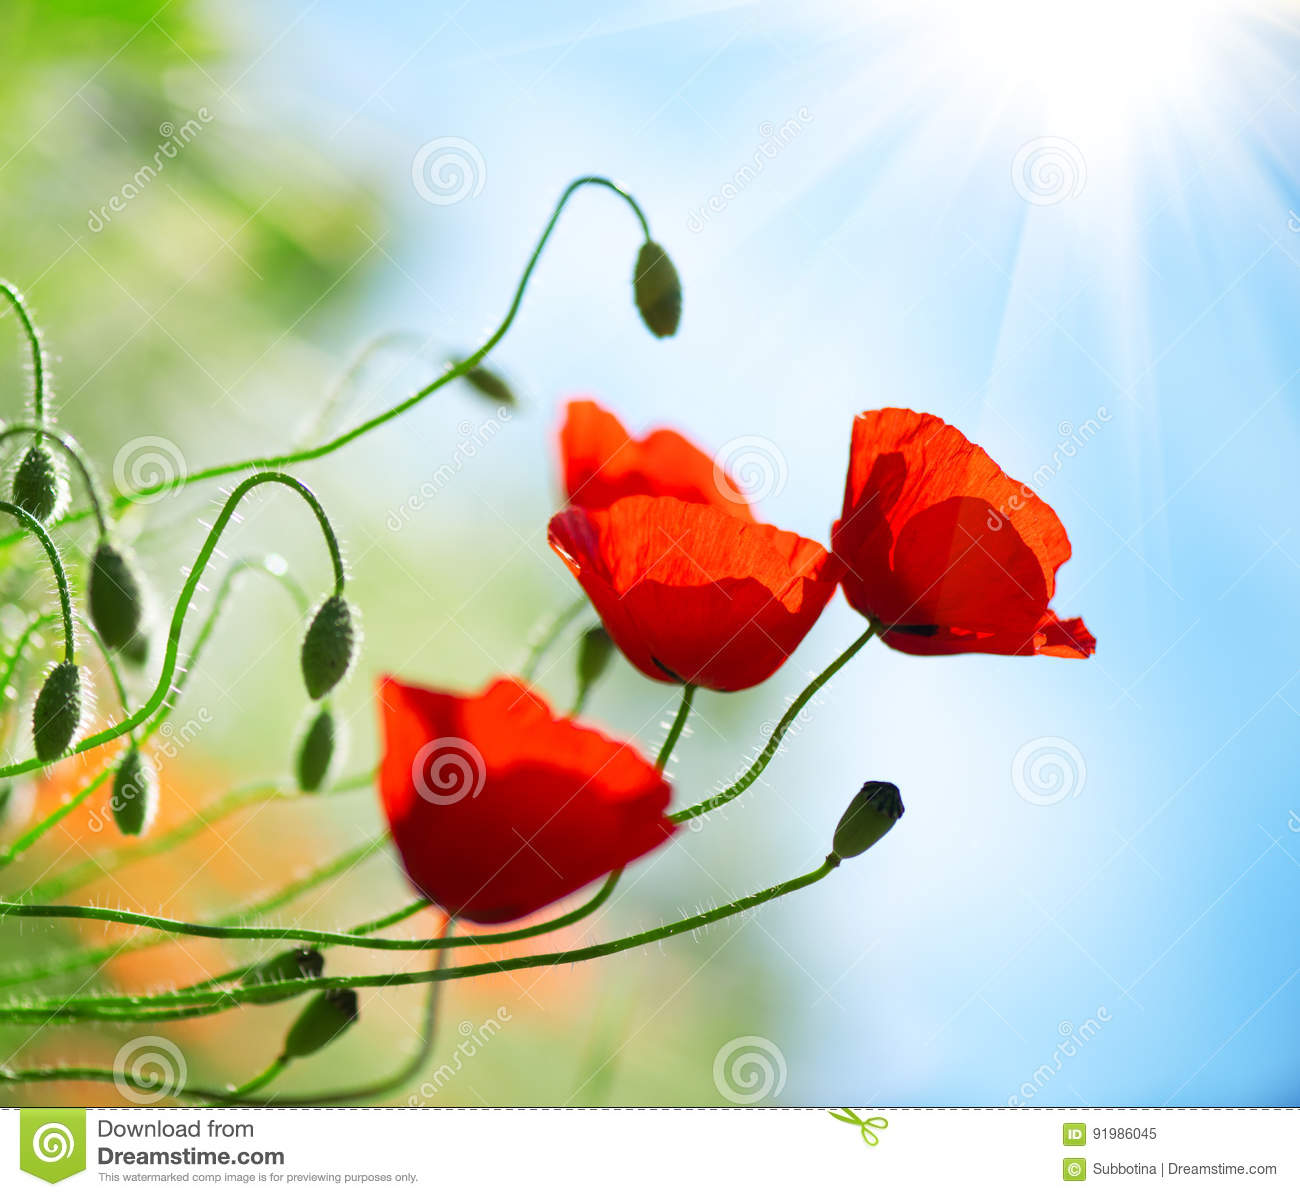 Poppy flowers field nature spring background